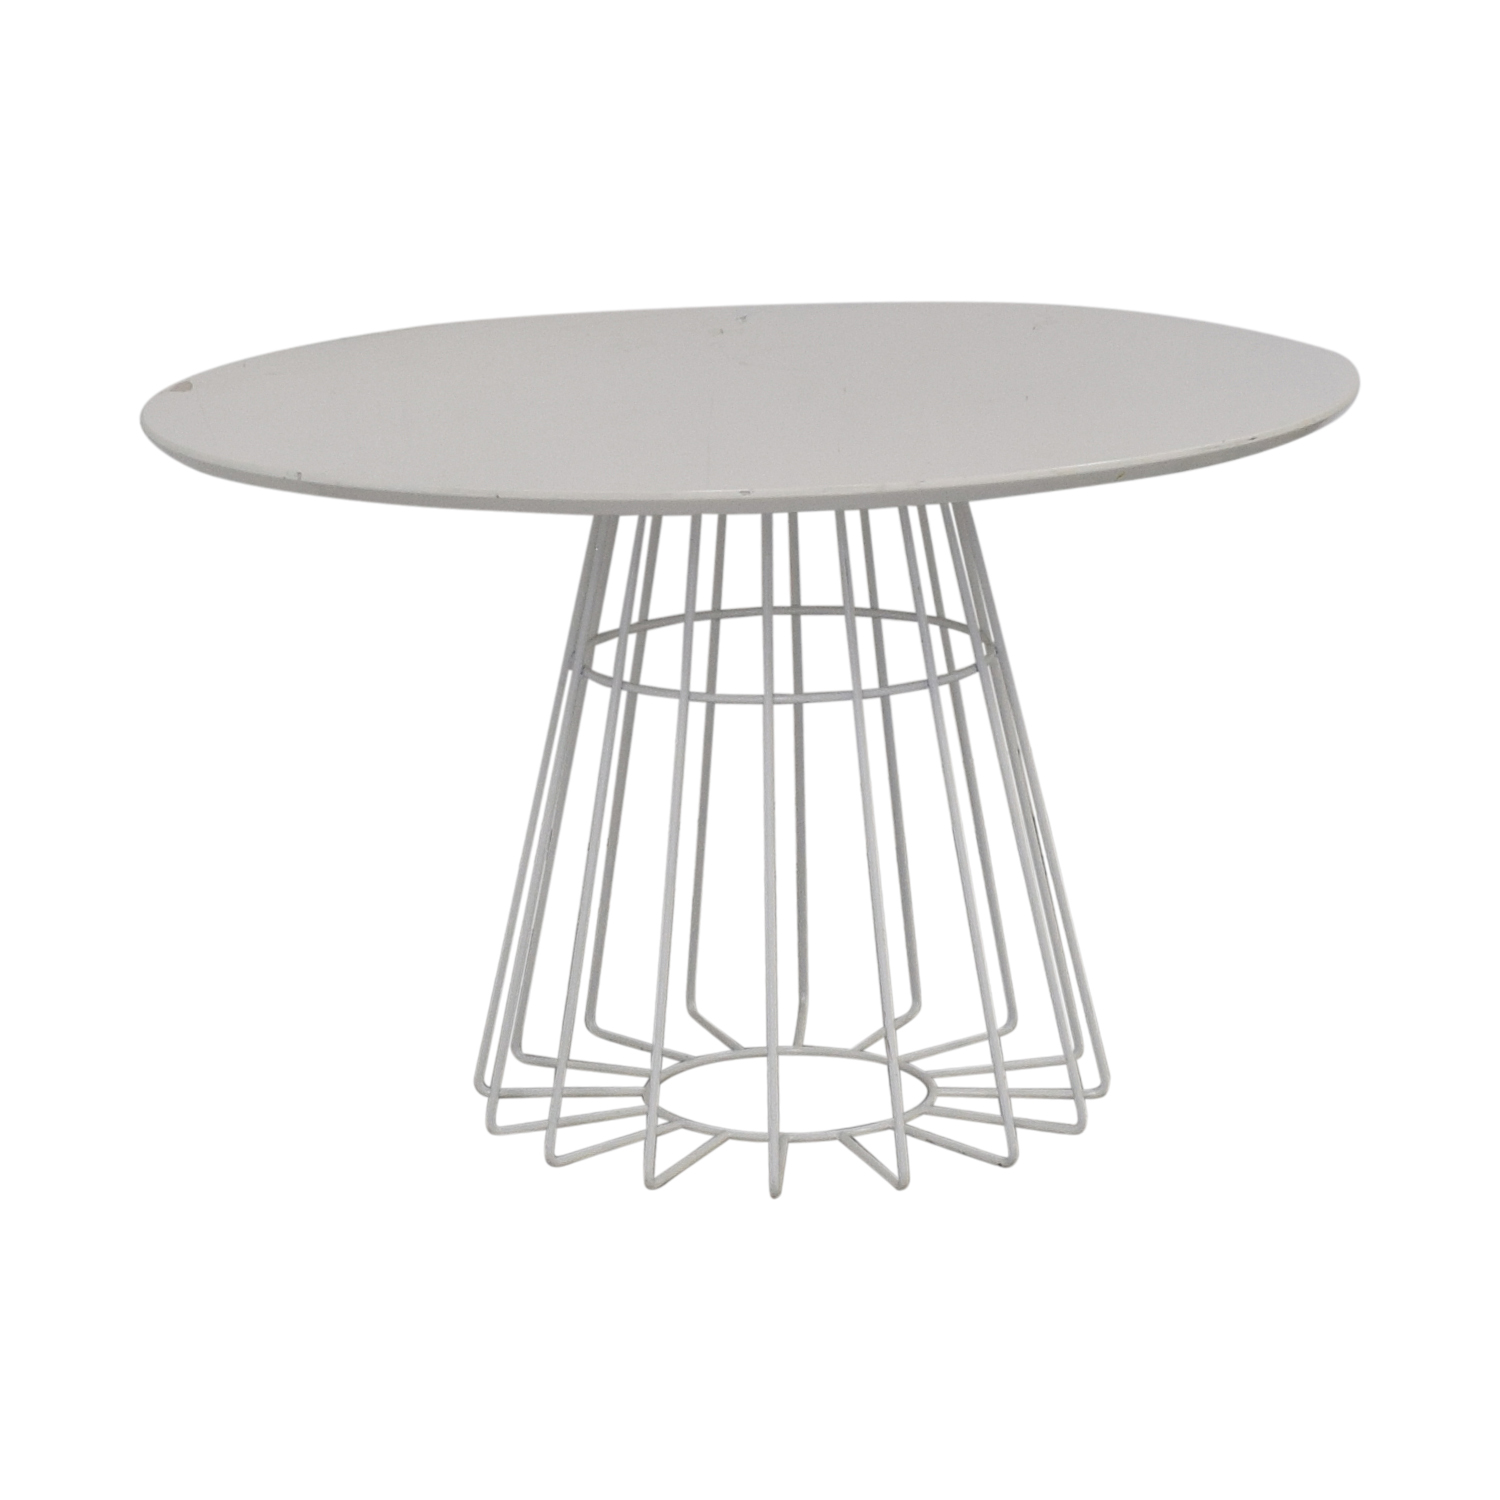 CB2 Compass Wire Base Dining Table / Dining Chairs